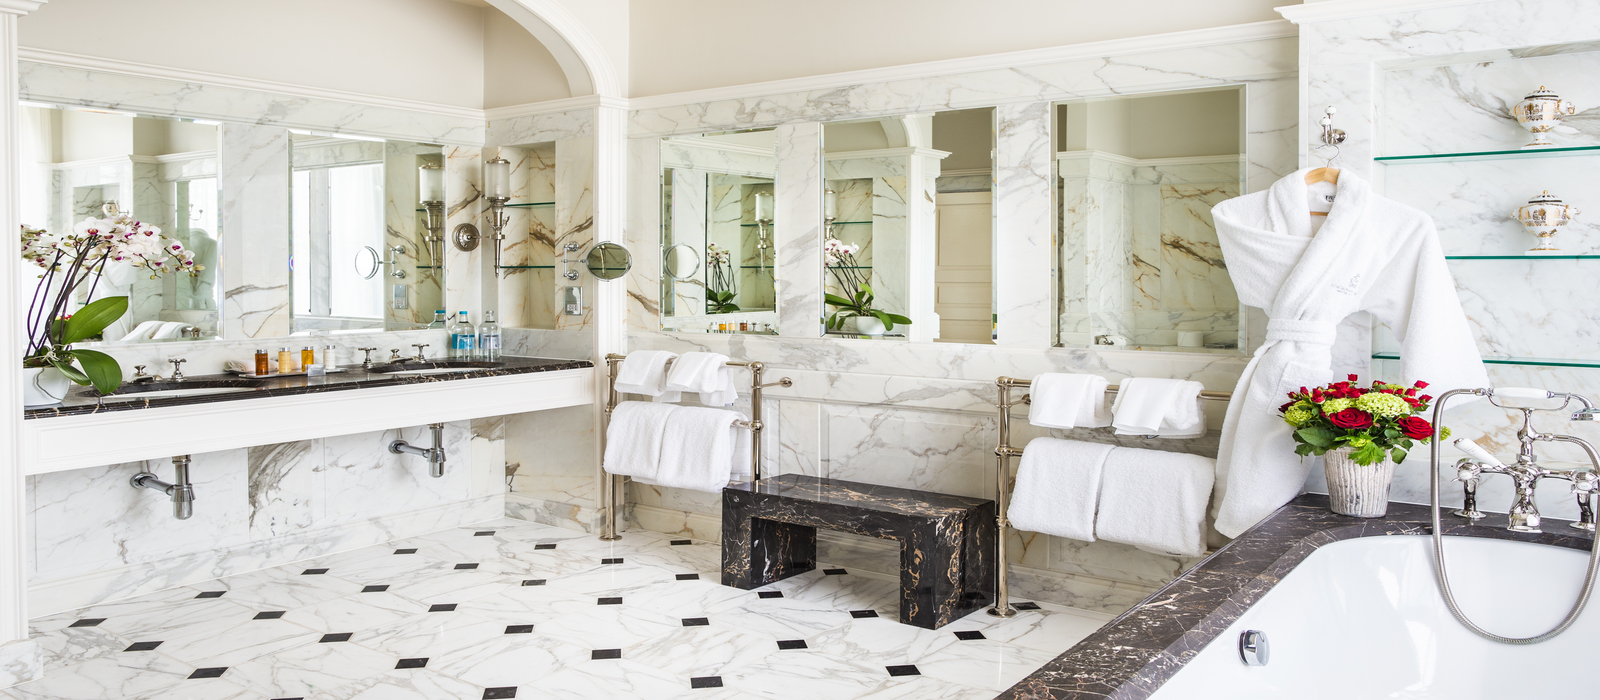 Lucknam Park Master Bathroom